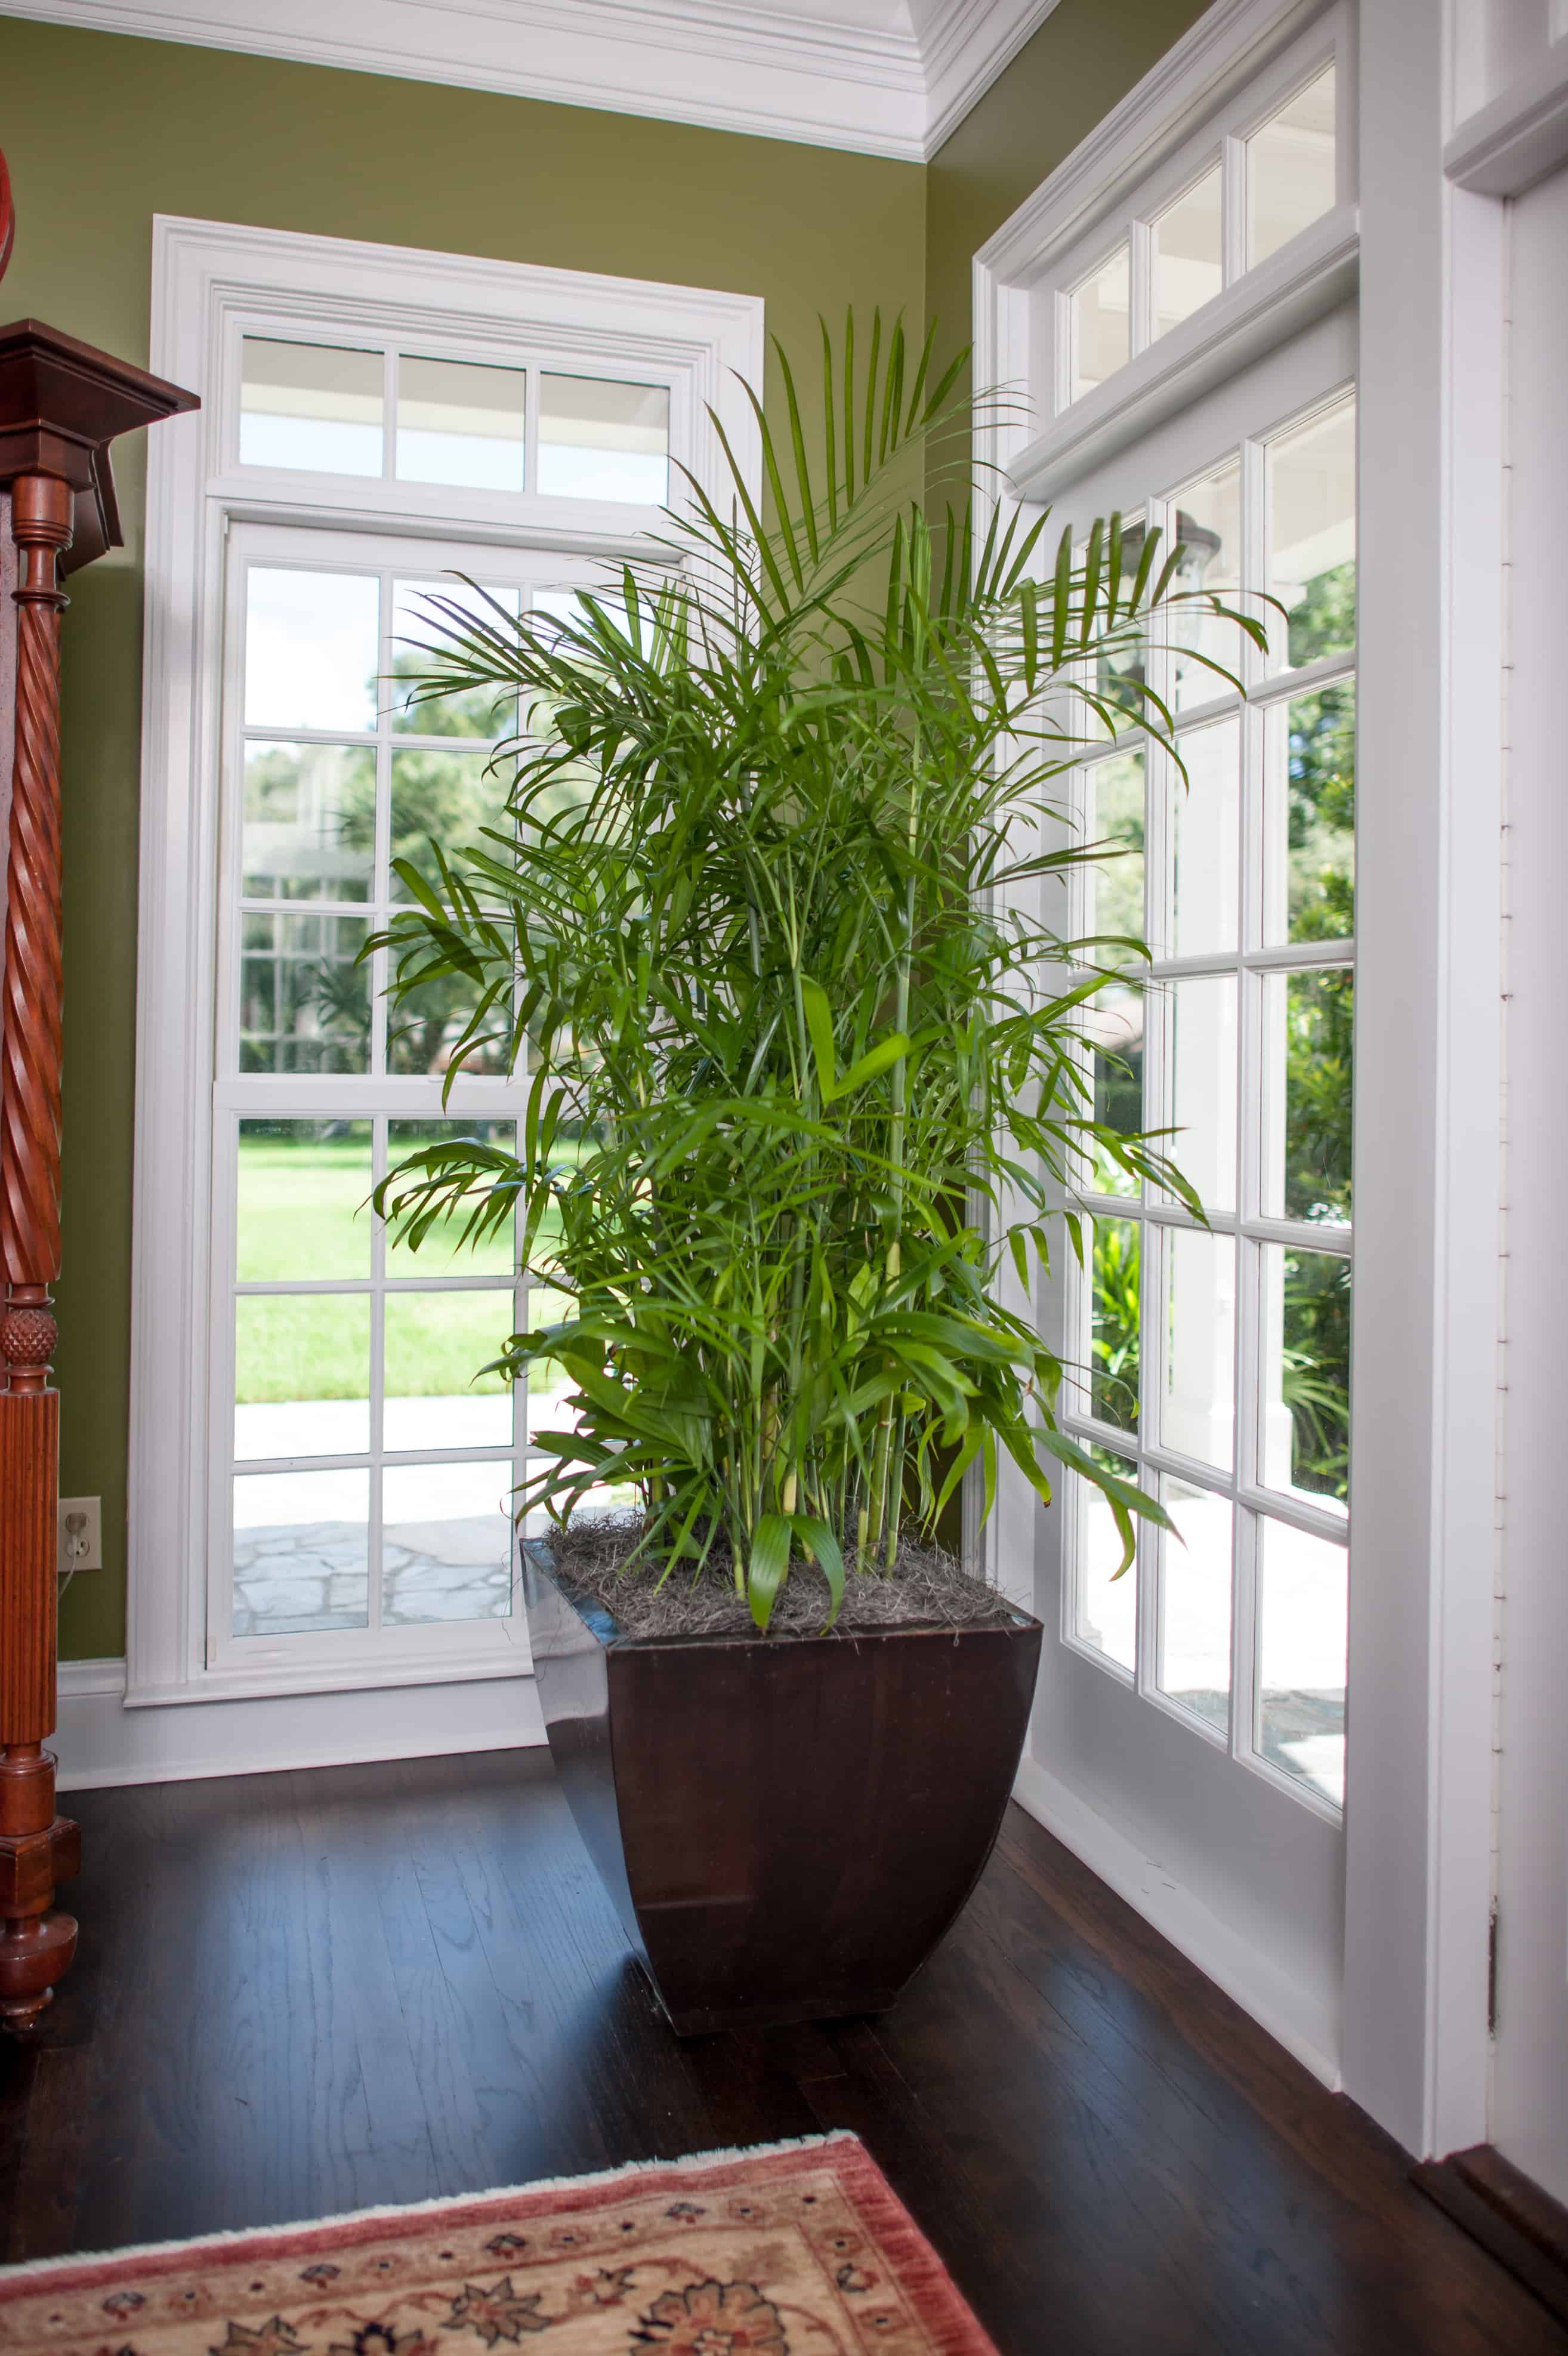 air-purifying-bamboo-palm-plant Palm Plants For Home on herb plants for home, water plants for home, potted plants for home, indoor plants for home, vine plants for home, decorative plants for home, tropical plants for home,